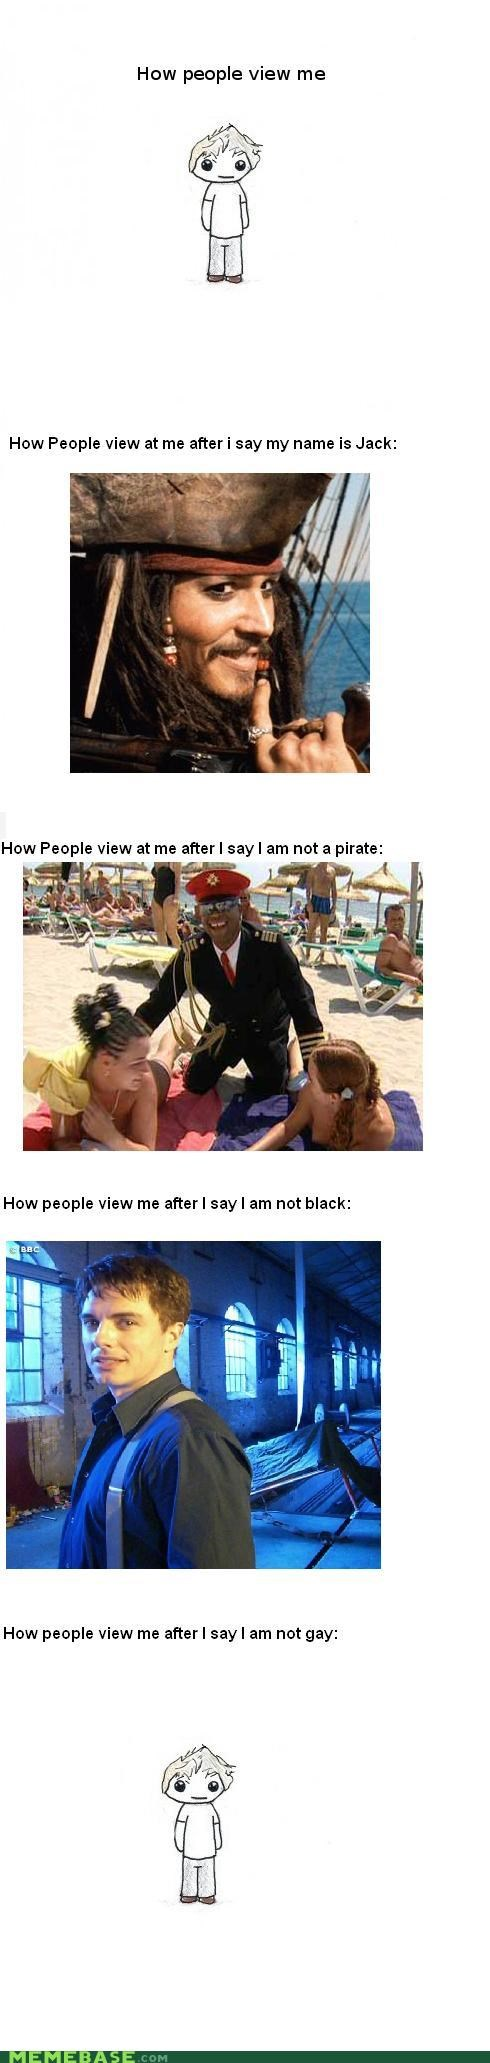 gay How People View Me jack lots pirates sparrow - 5169097984